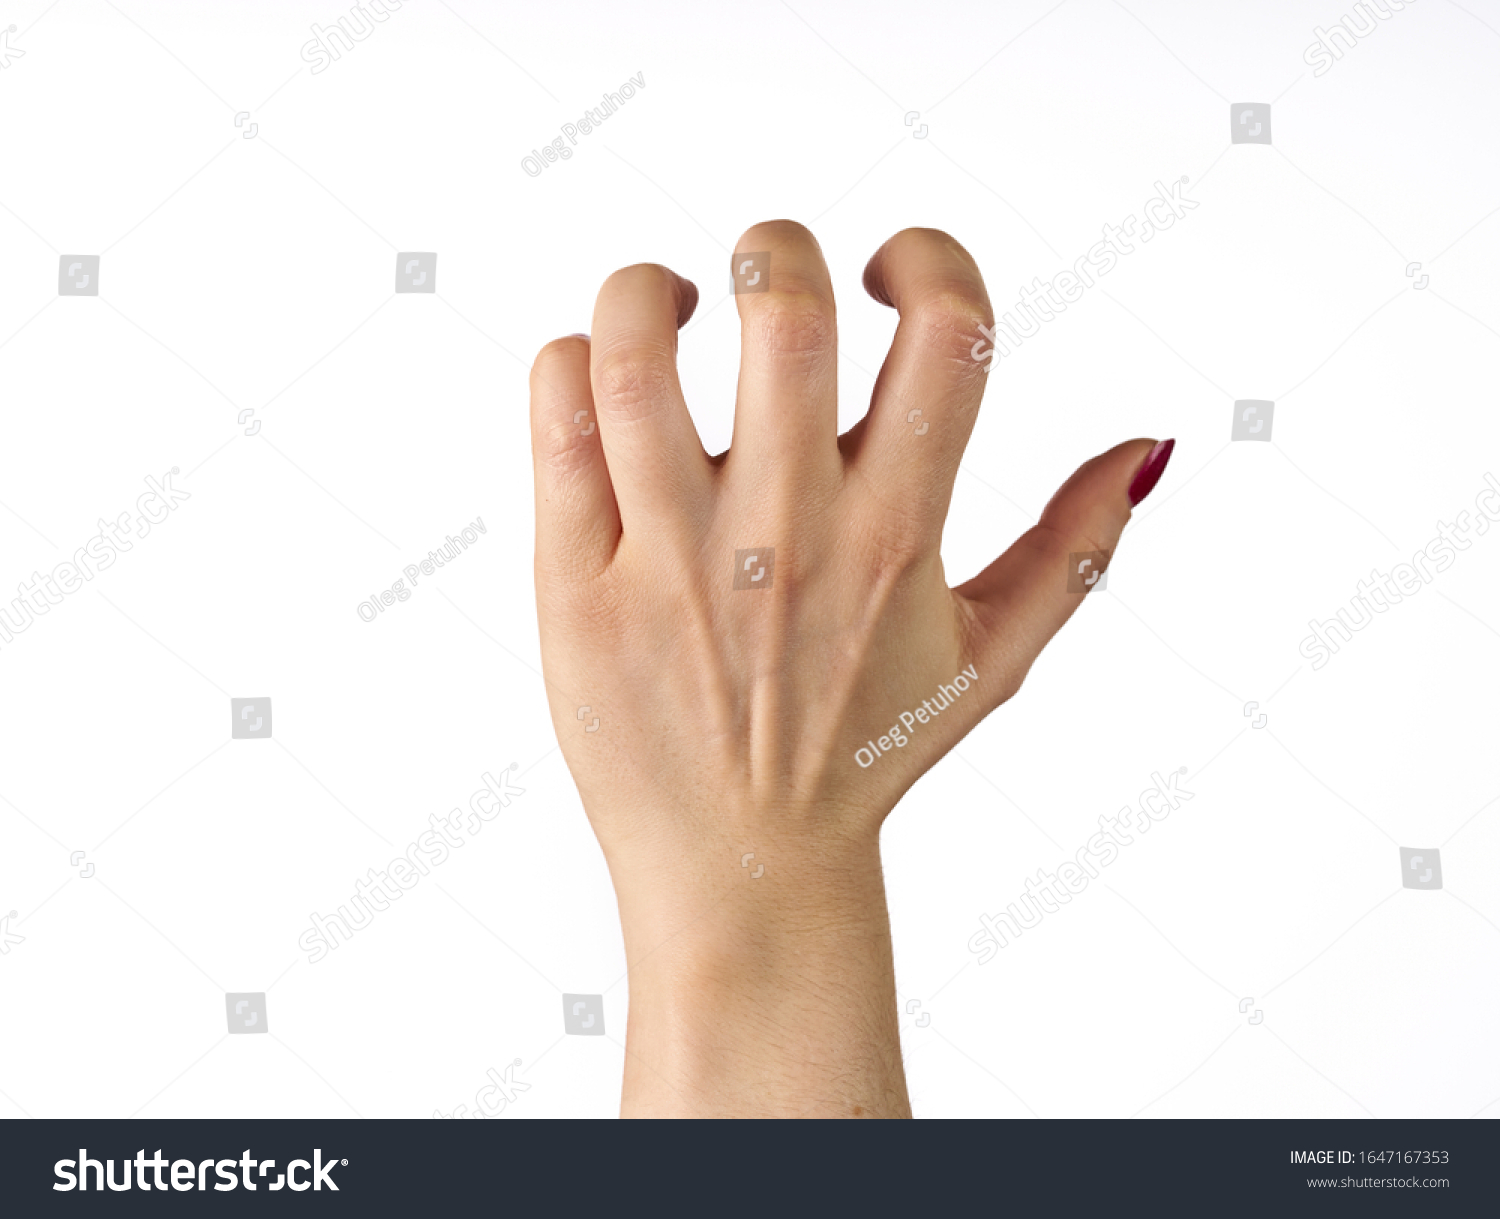 hand of a woman trying to reach or grab something. fling, touch sign. isolated on white background. #1647167353